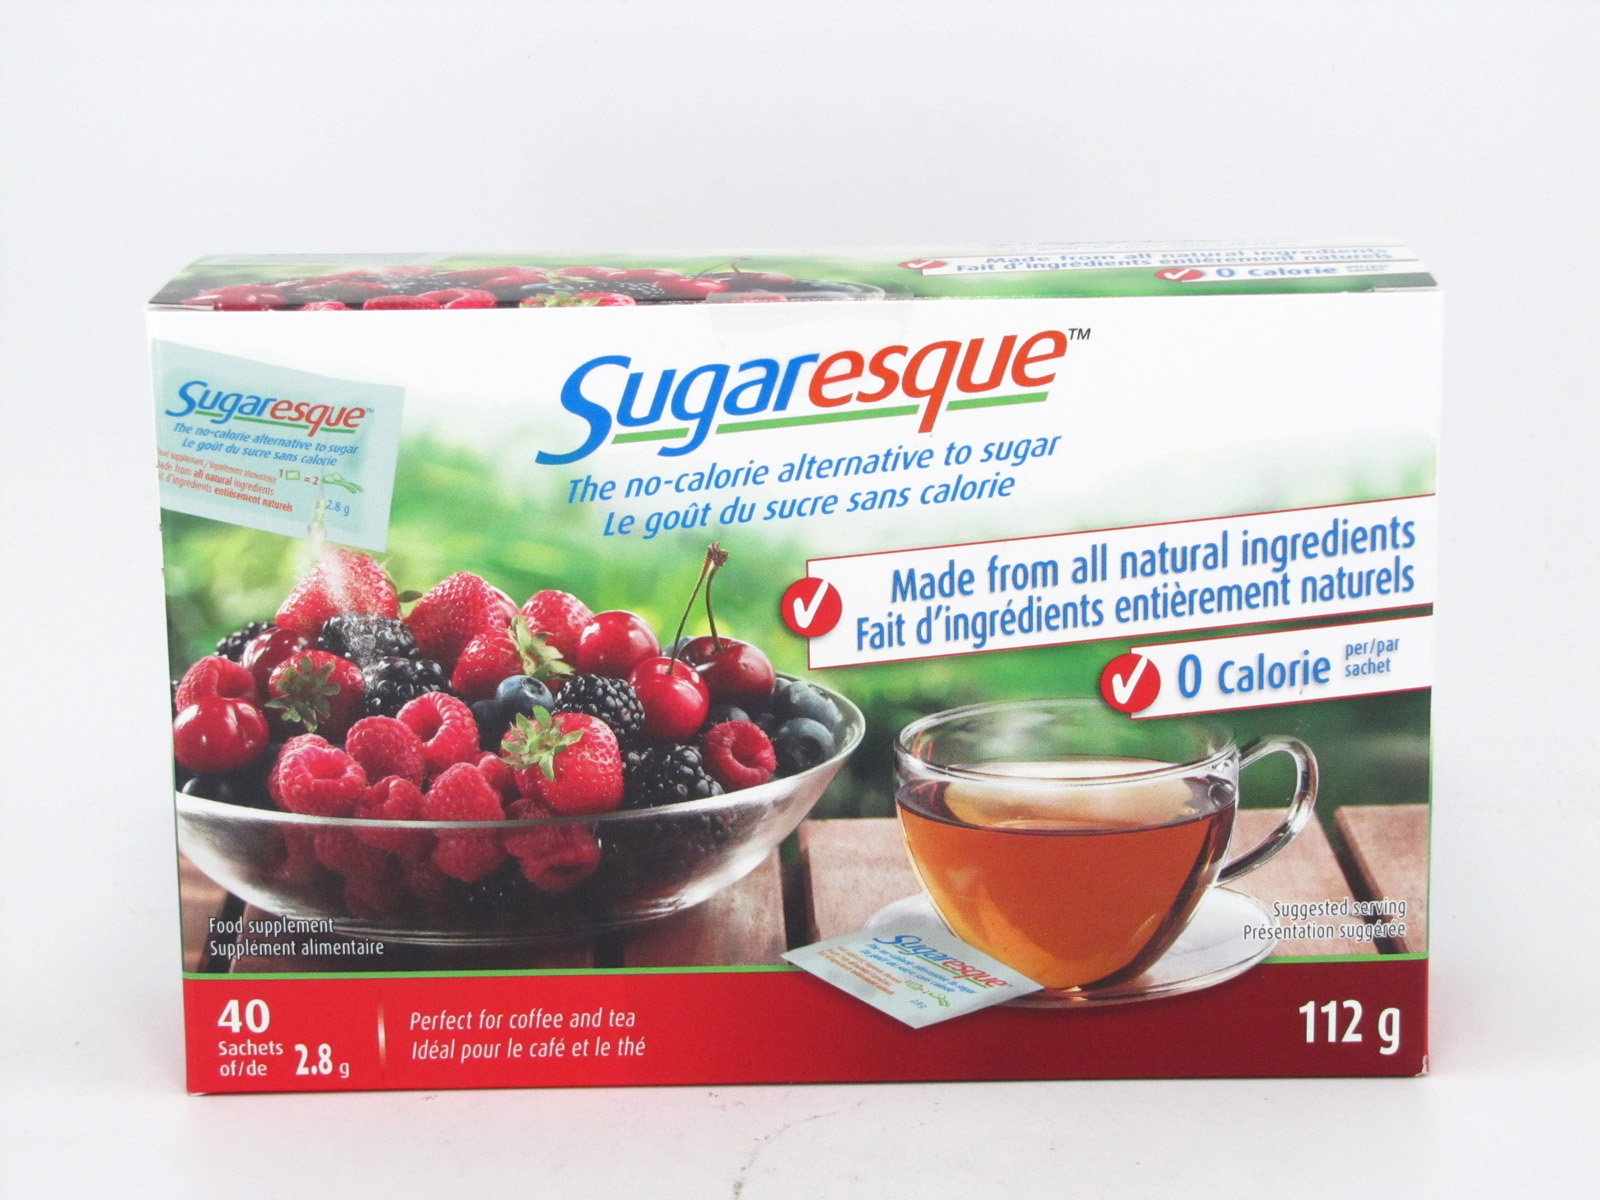 Sugaresque 112 g - front view